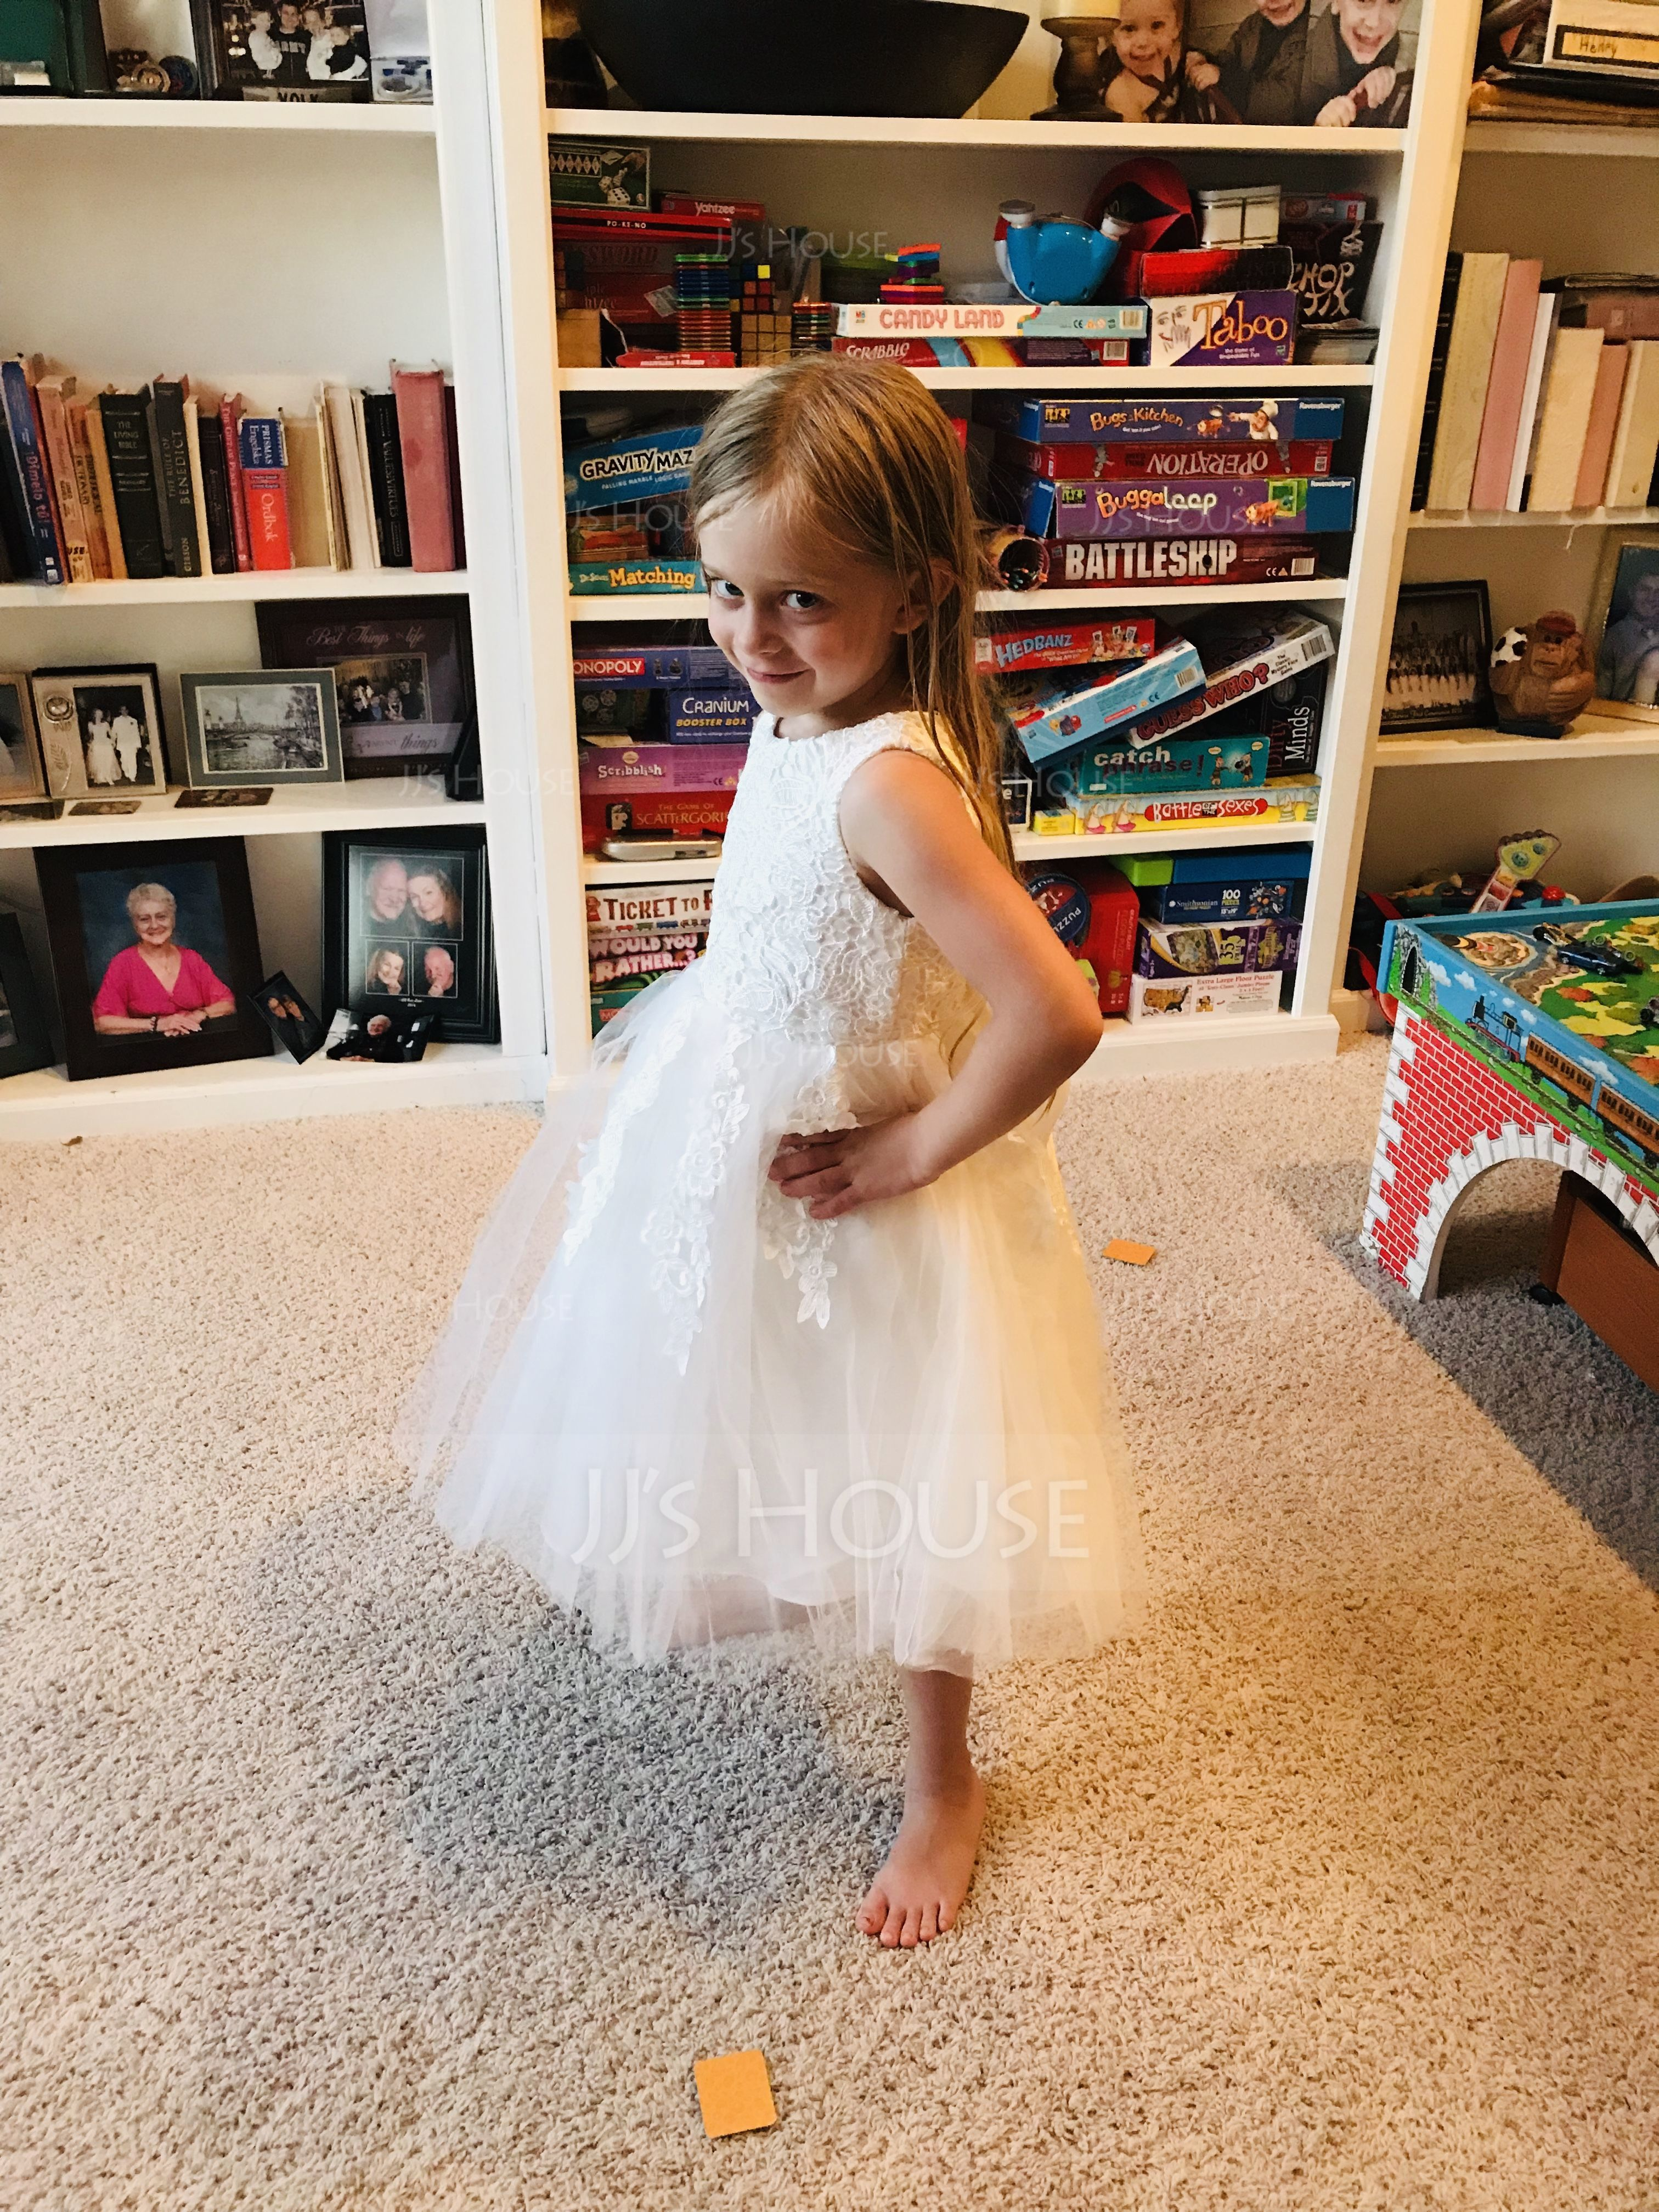 A-Line/Princess Knee-length Flower Girl Dress - Tulle/Lace Sleeveless Scoop Neck With Lace/Bow(s) (010117689)